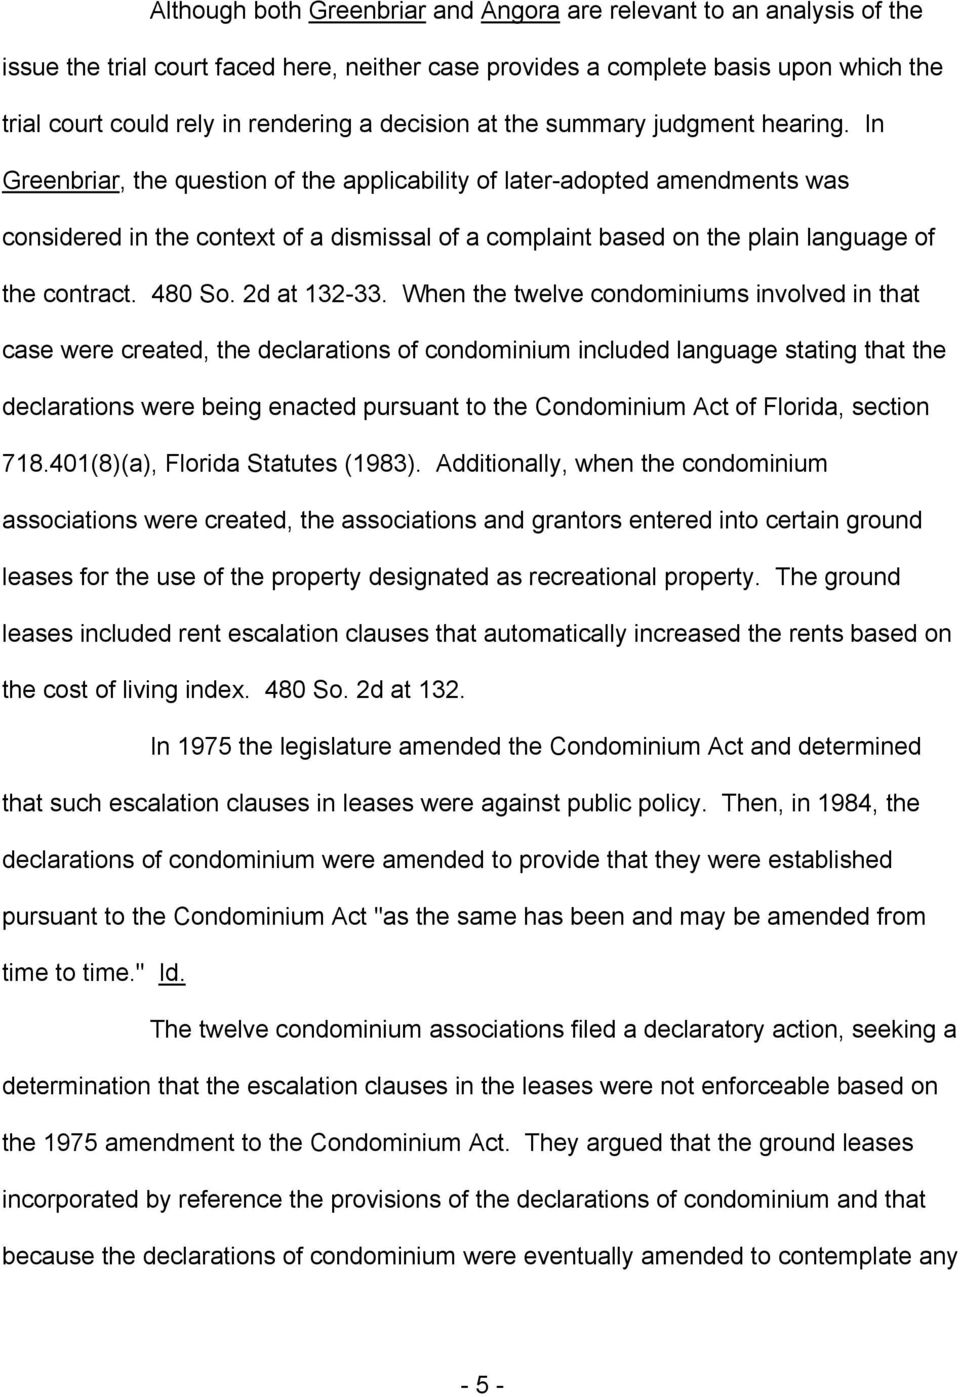 In Greenbriar, the question of the applicability of later-adopted amendments was considered in the context of a dismissal of a complaint based on the plain language of the contract. 480 So.